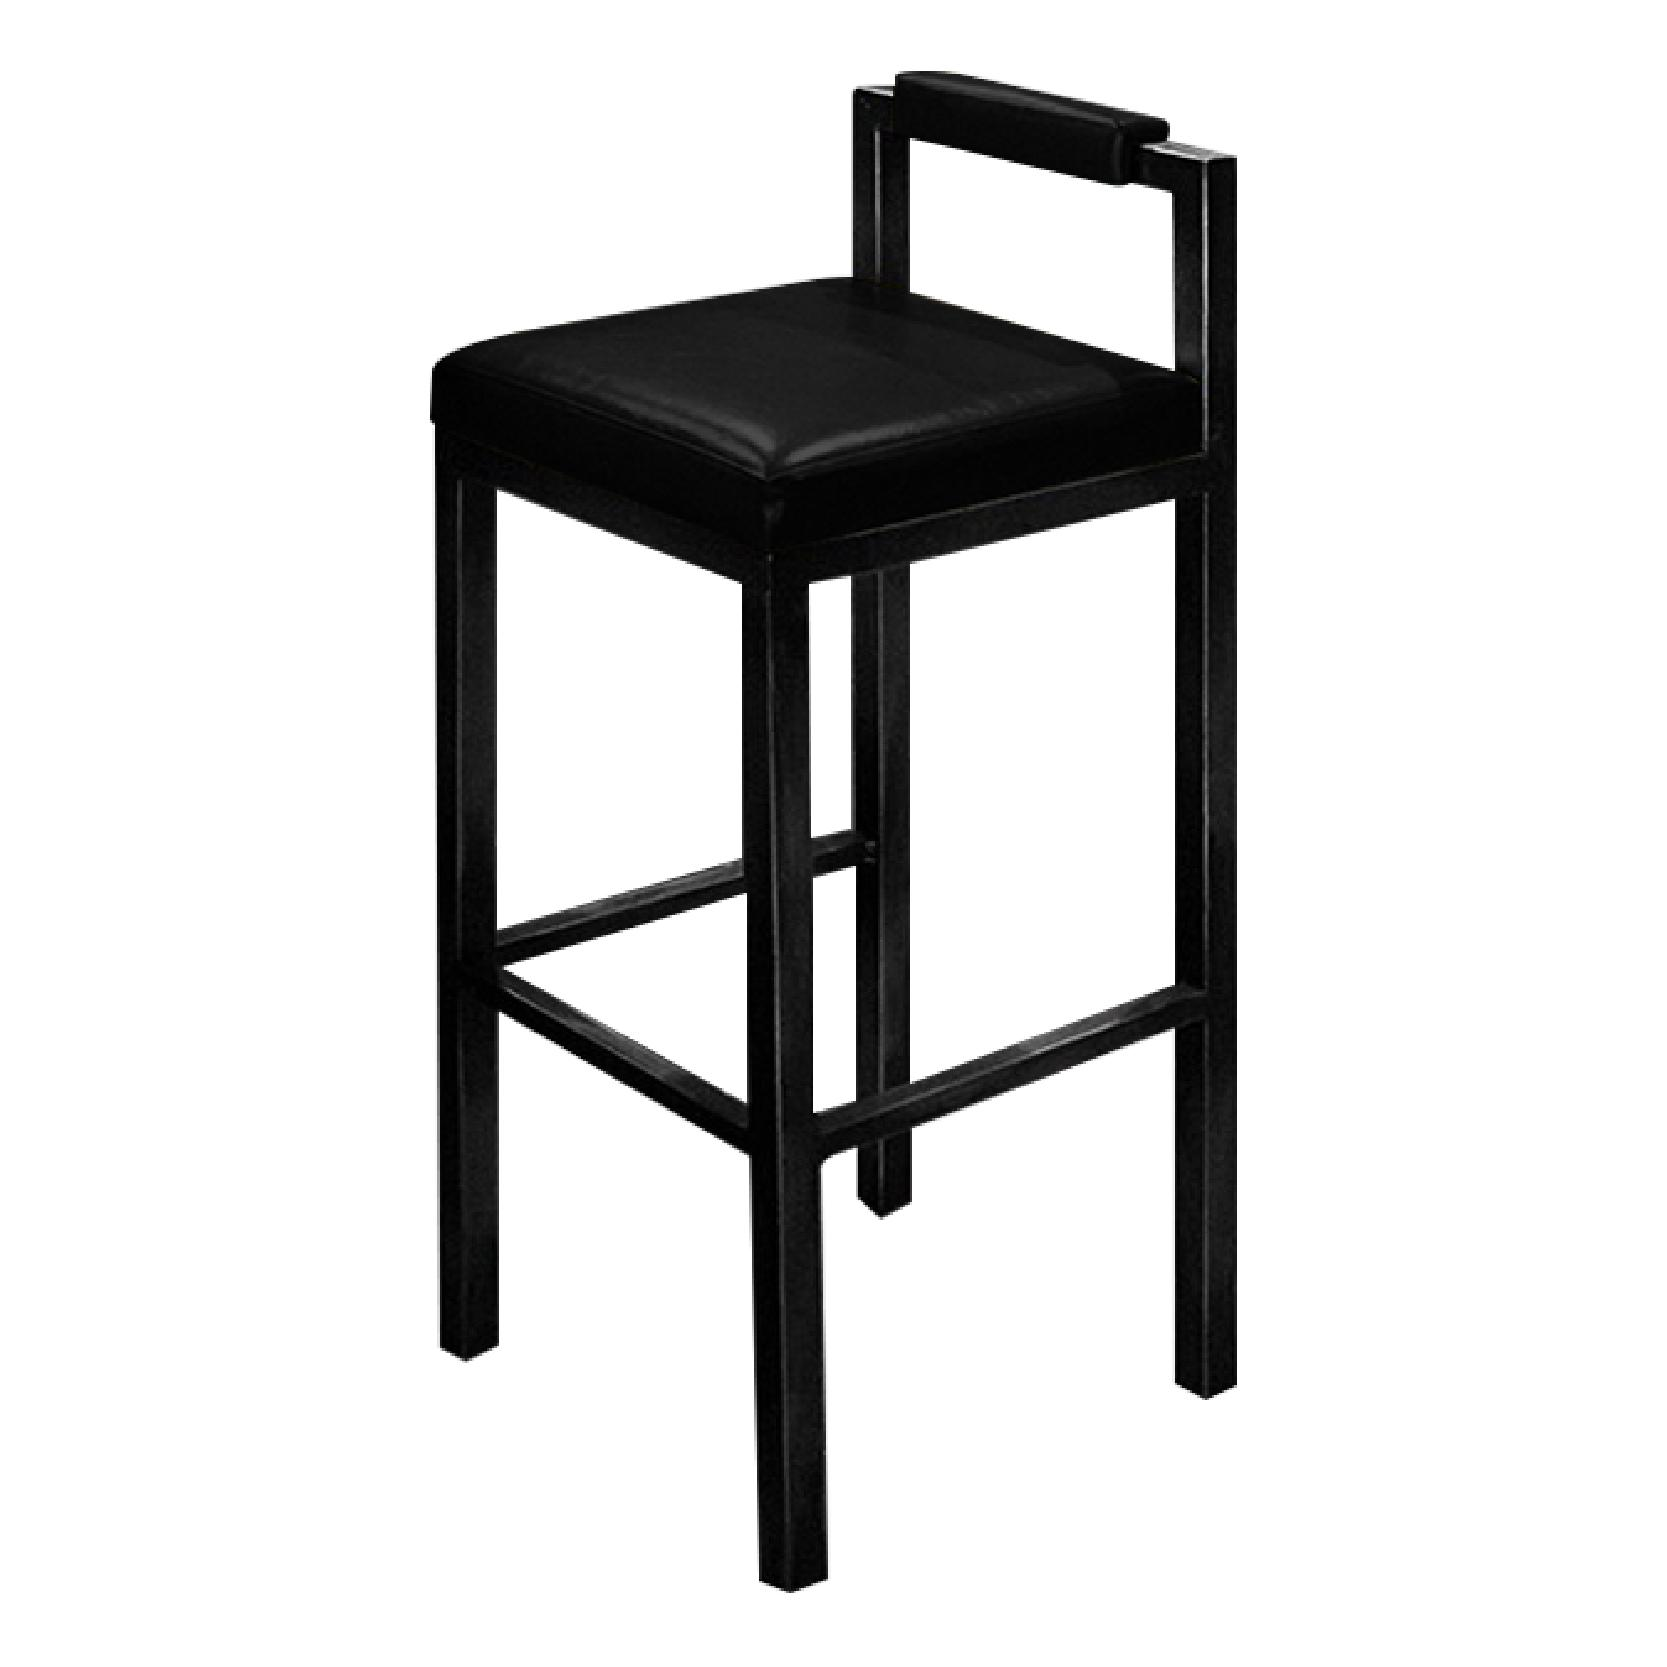 JIJI (ELEPHANT Bar Stool) / High Chair Stool / Designer Stool / Bar Stool / Backrest / Leather / Steel Frame / 6 Month Warranty / (SG)